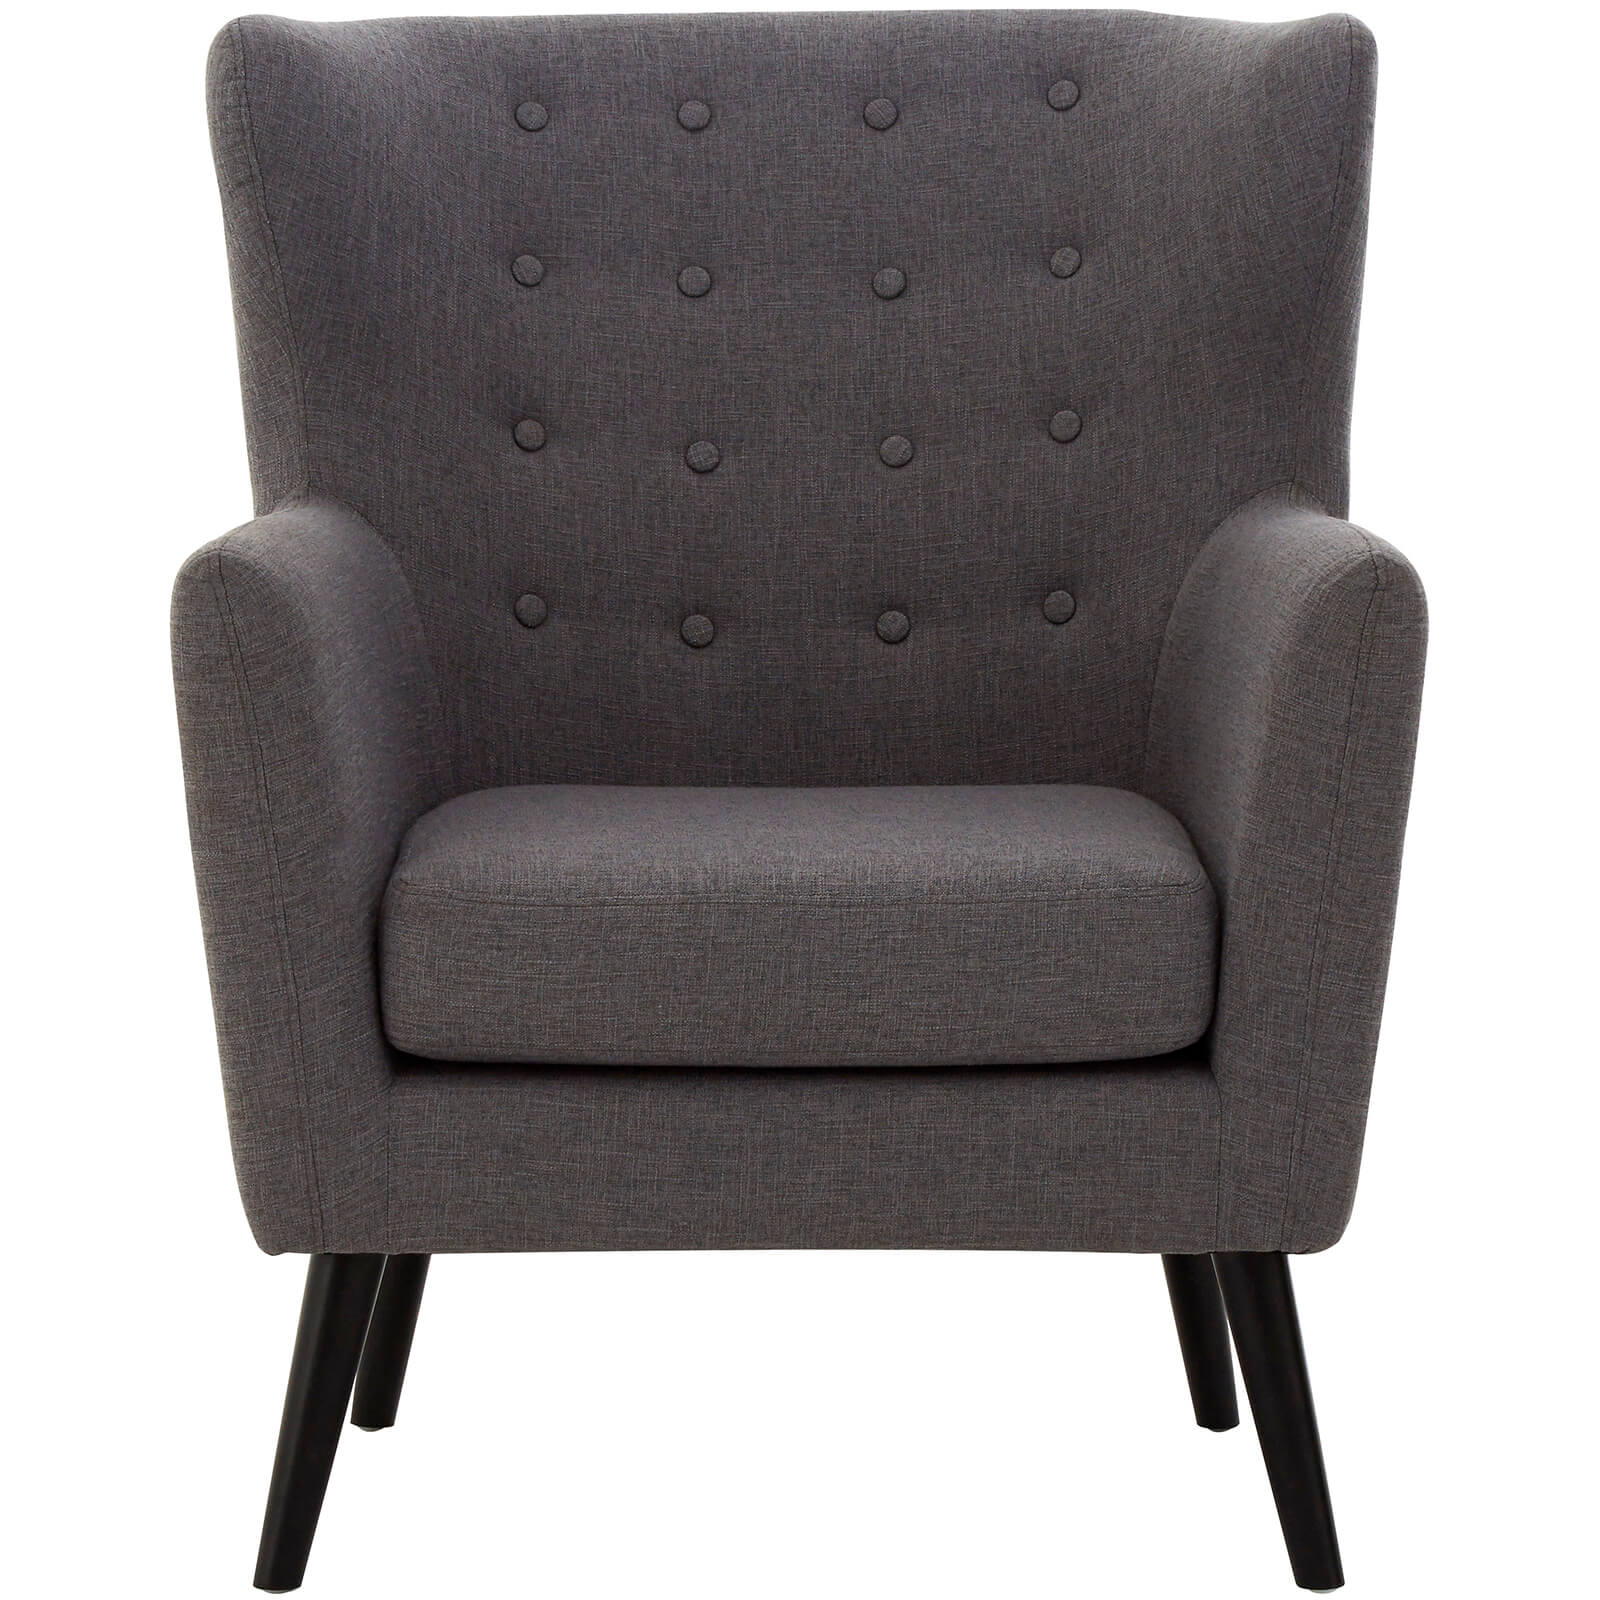 Odense Arm Chair - Grey/Black